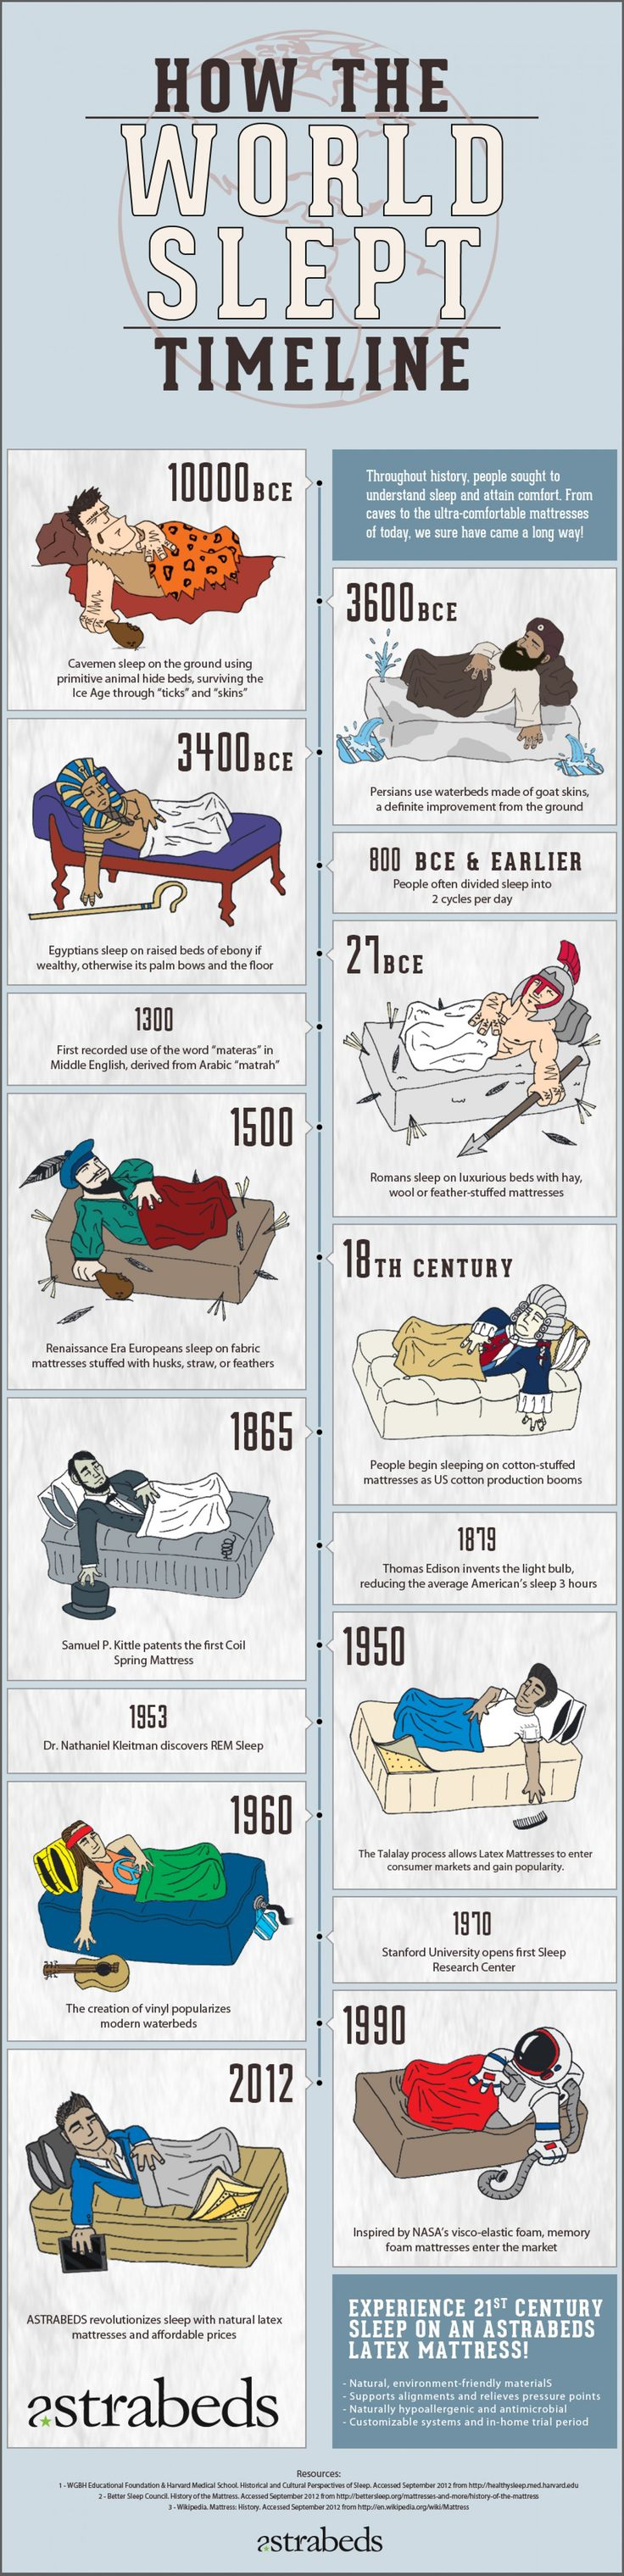 This information is pretty amazing. We've come a long way, and are still creating innovative mattresses.